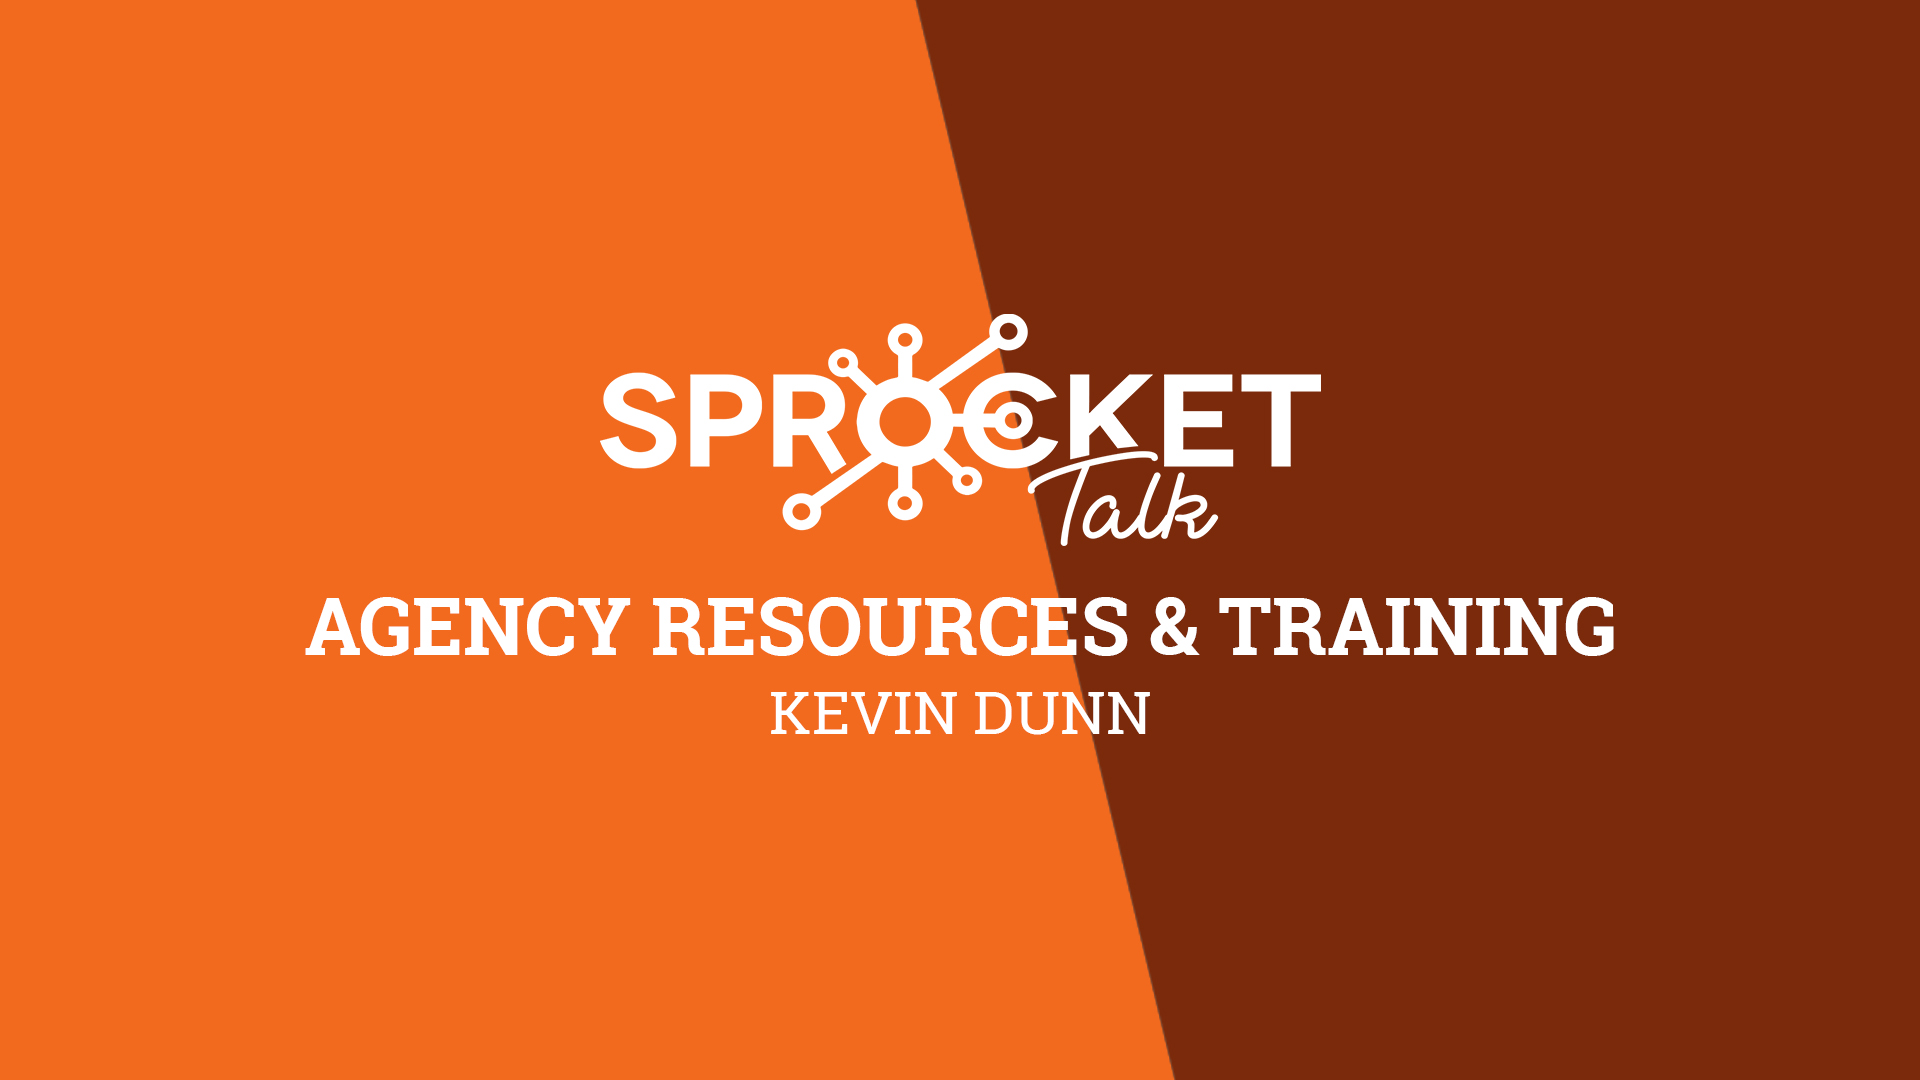 Kevin Dunn | Agency Resources & Training